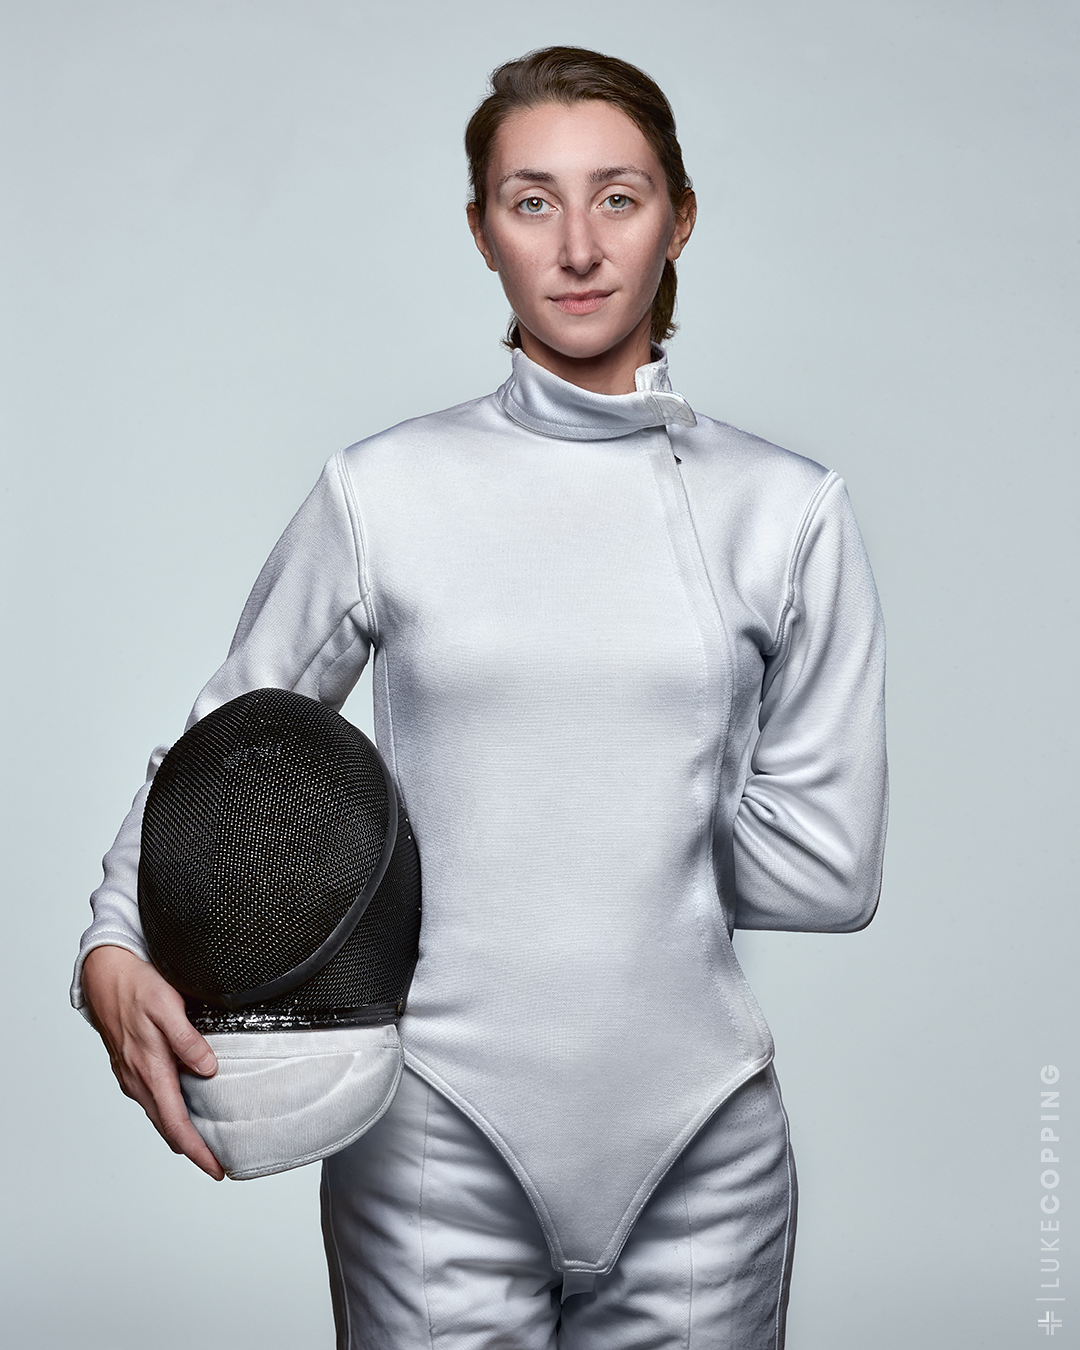 Christine Gallisdorfer of Buffalo Les Amis Fencing Club